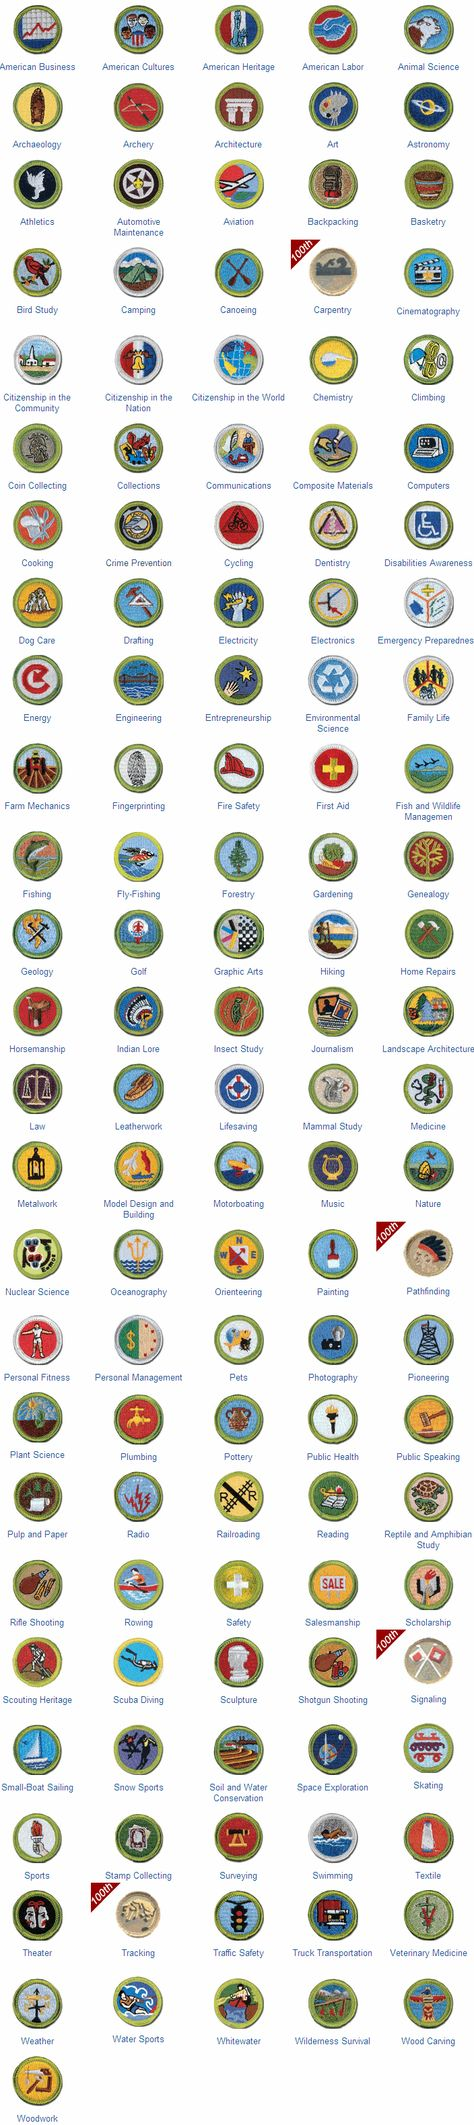 Workbooks usscouts org merit badge worksheets : boyscout badge chart - Google Search | garden | Pinterest | Merit ...